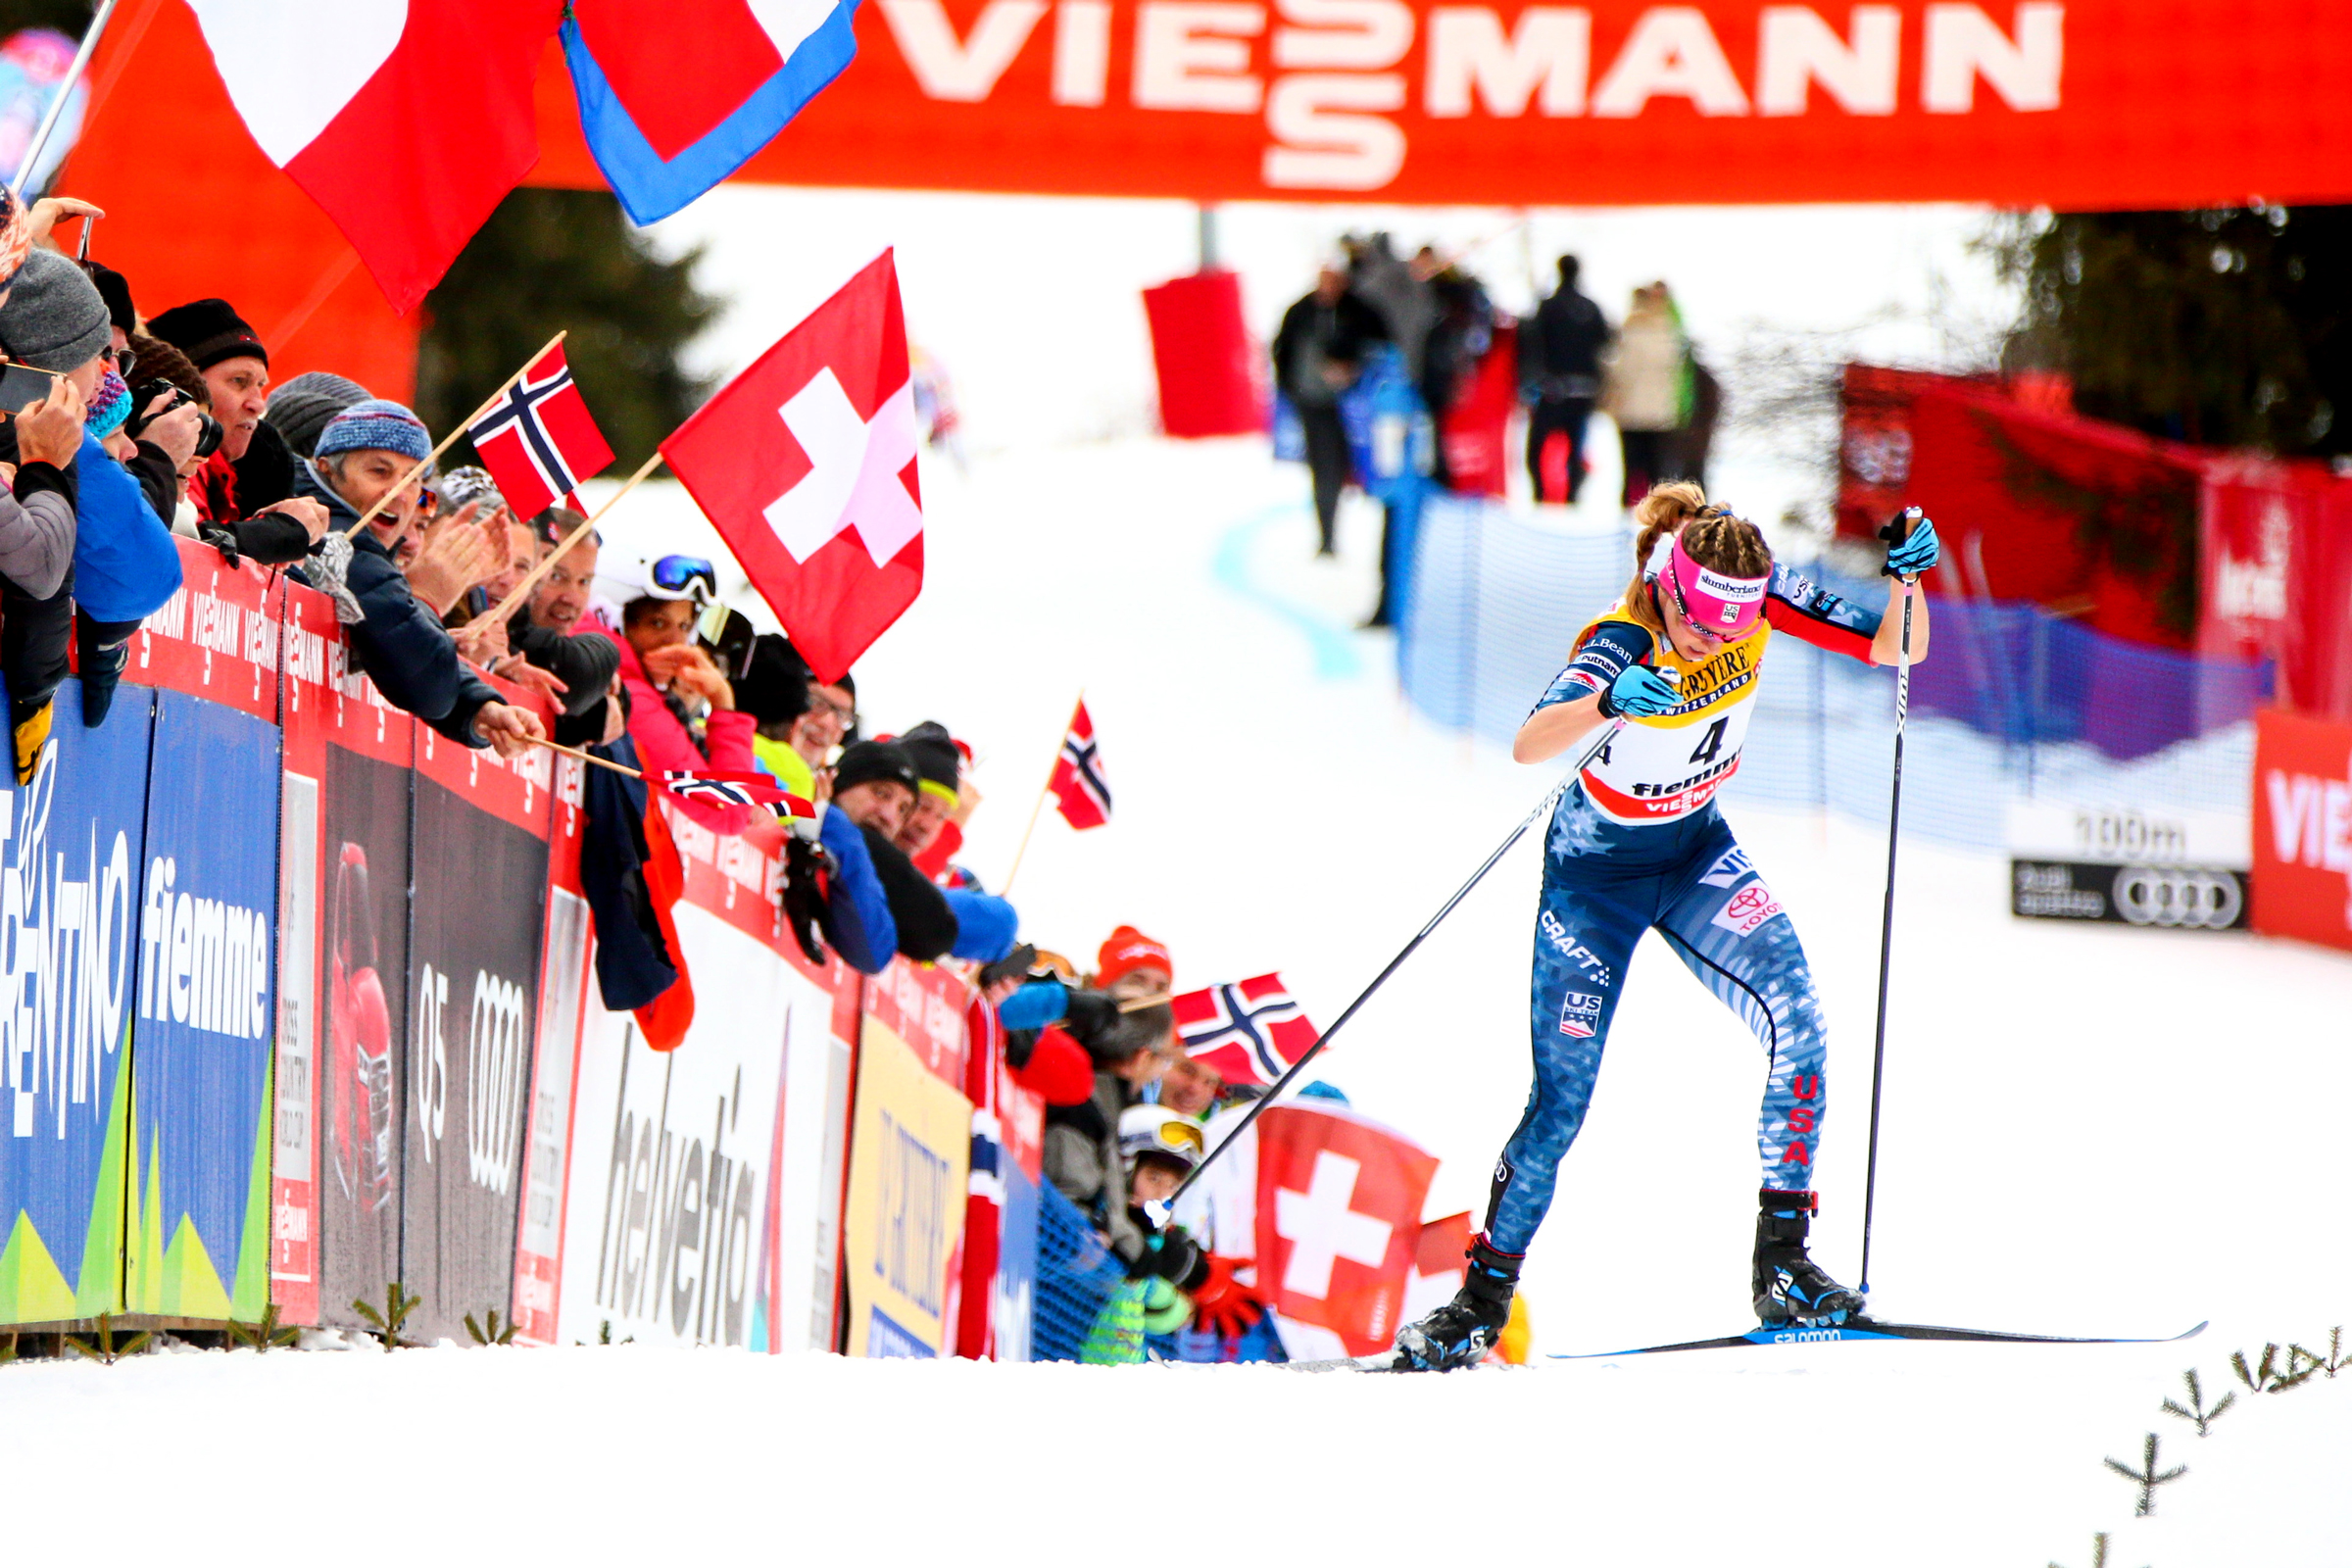 Jessica Diggins finished third in the final stage of the Tour de Ski in 2018 in Val di Fiemme, Italy. (Getty Images/Agency Zoom -  Laurent Salino)